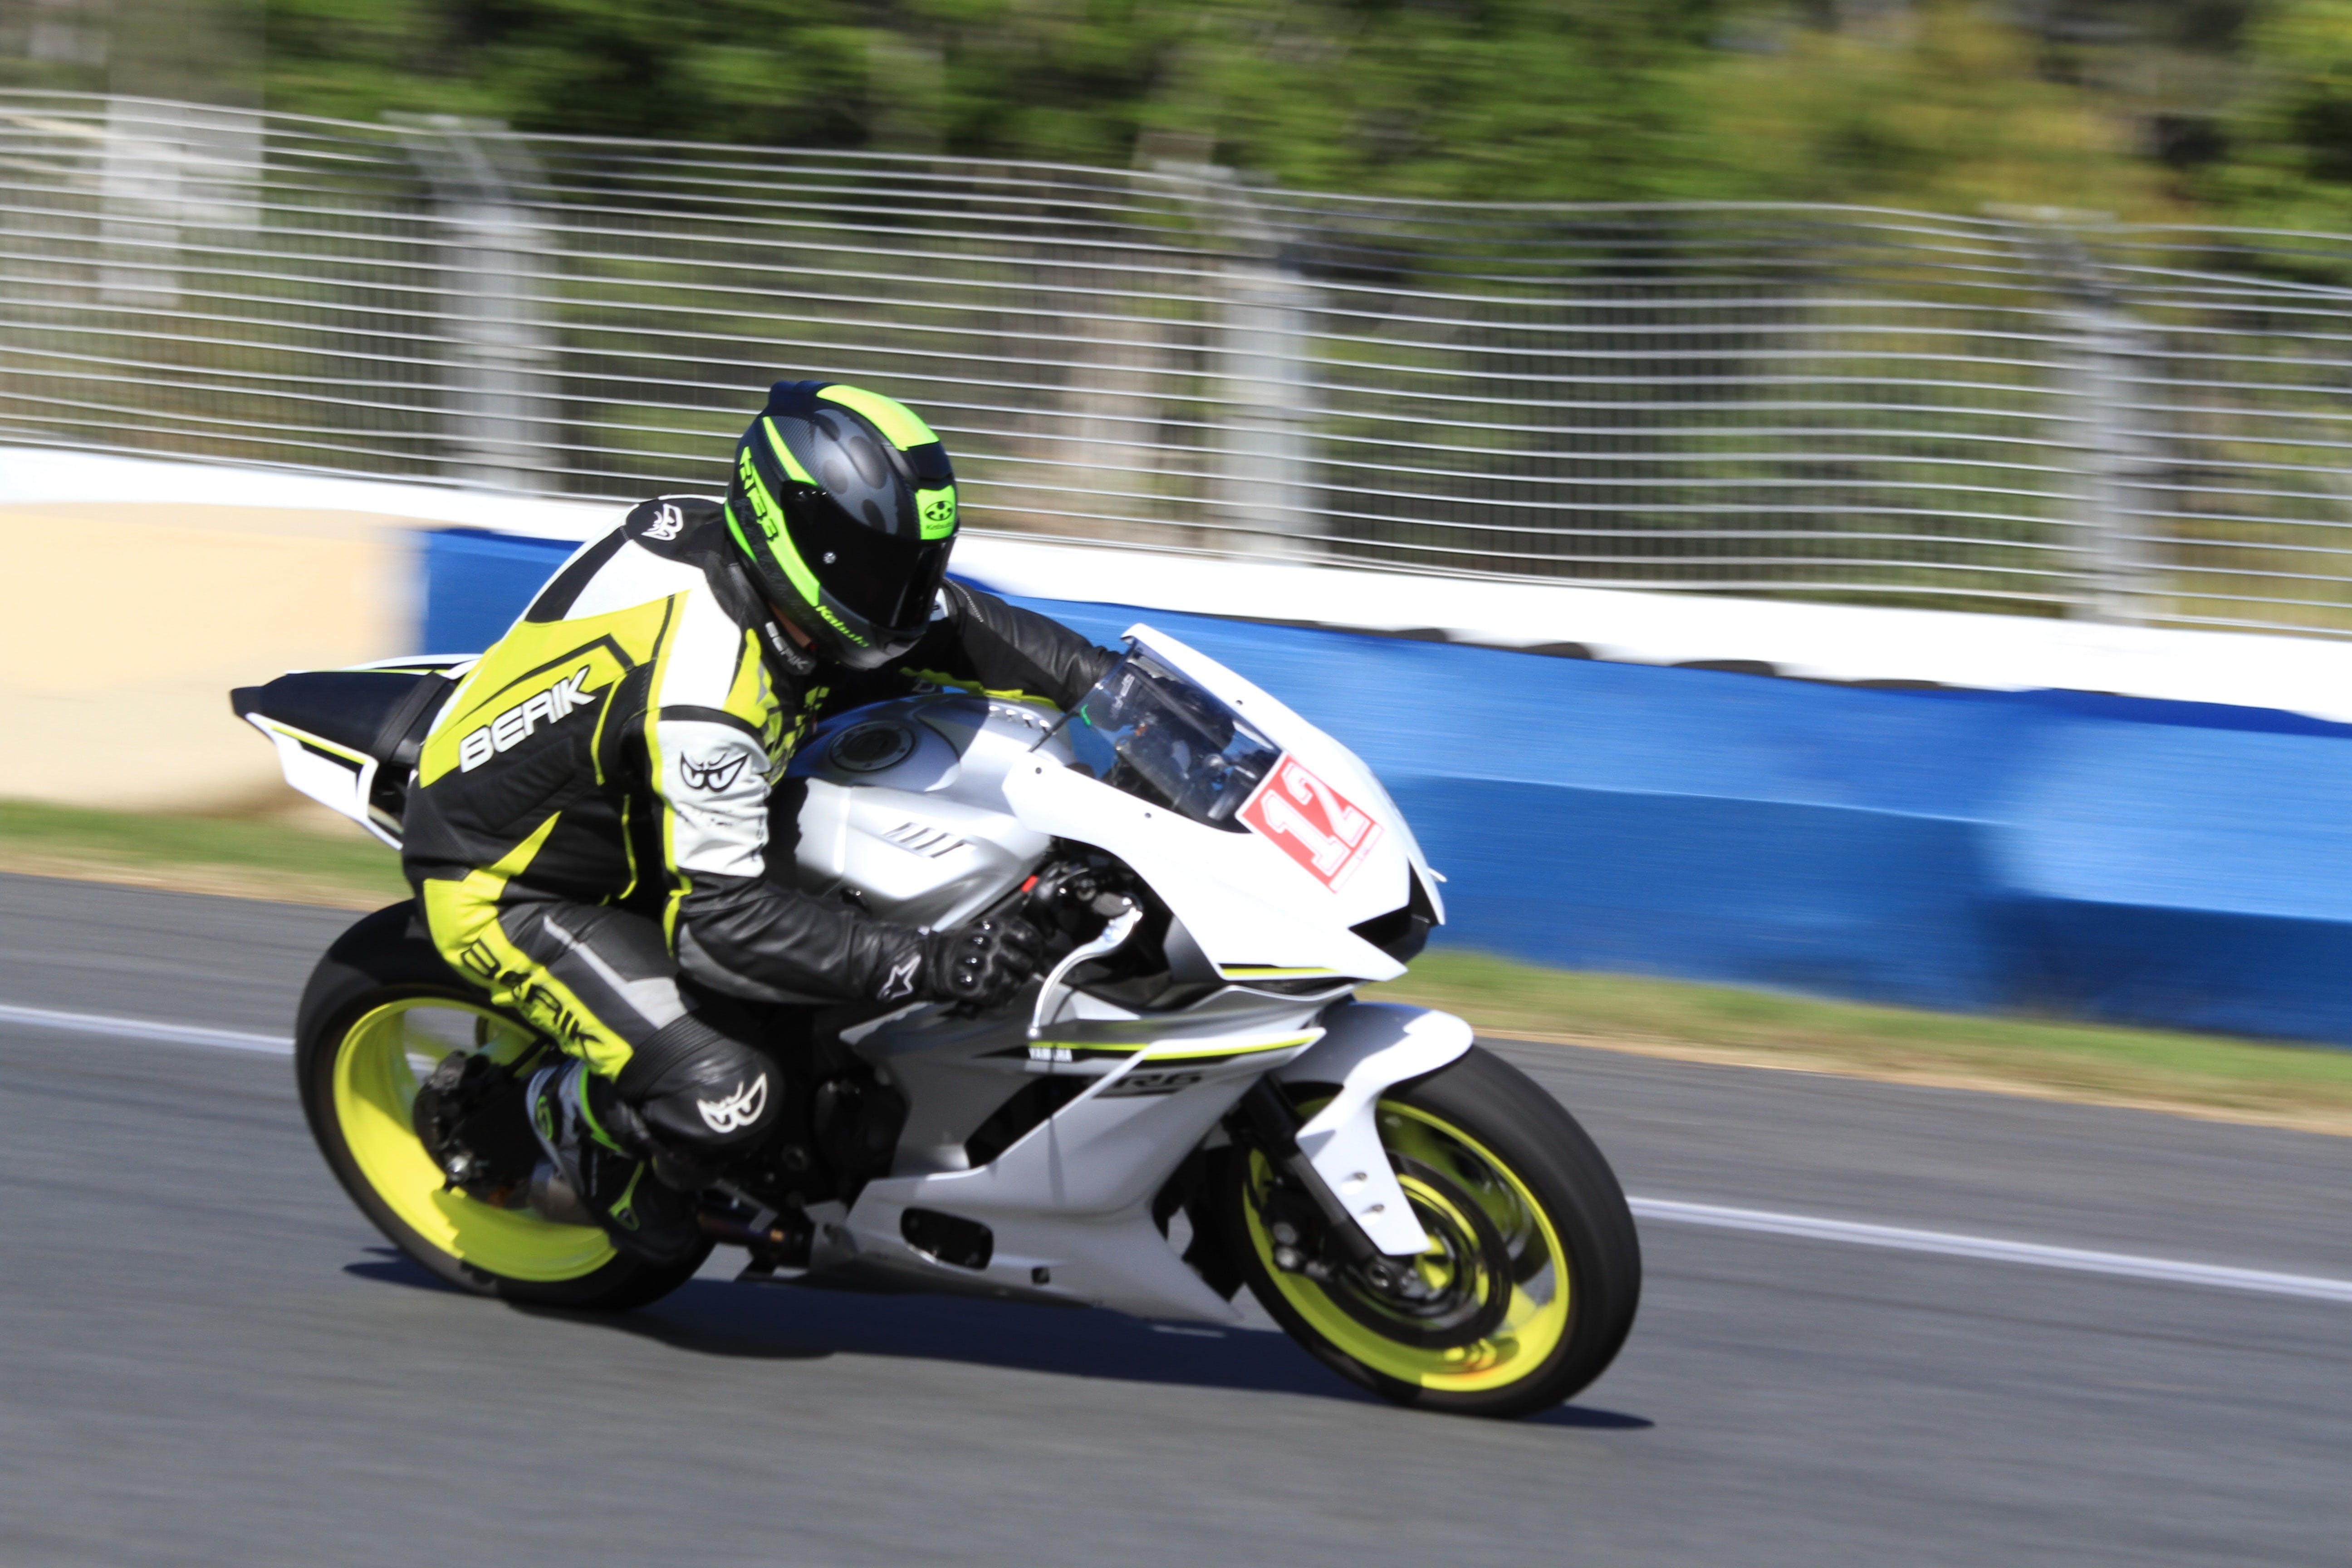 QR Moto Ride Days at Queensland Raceways - Yarra Valley Accommodation